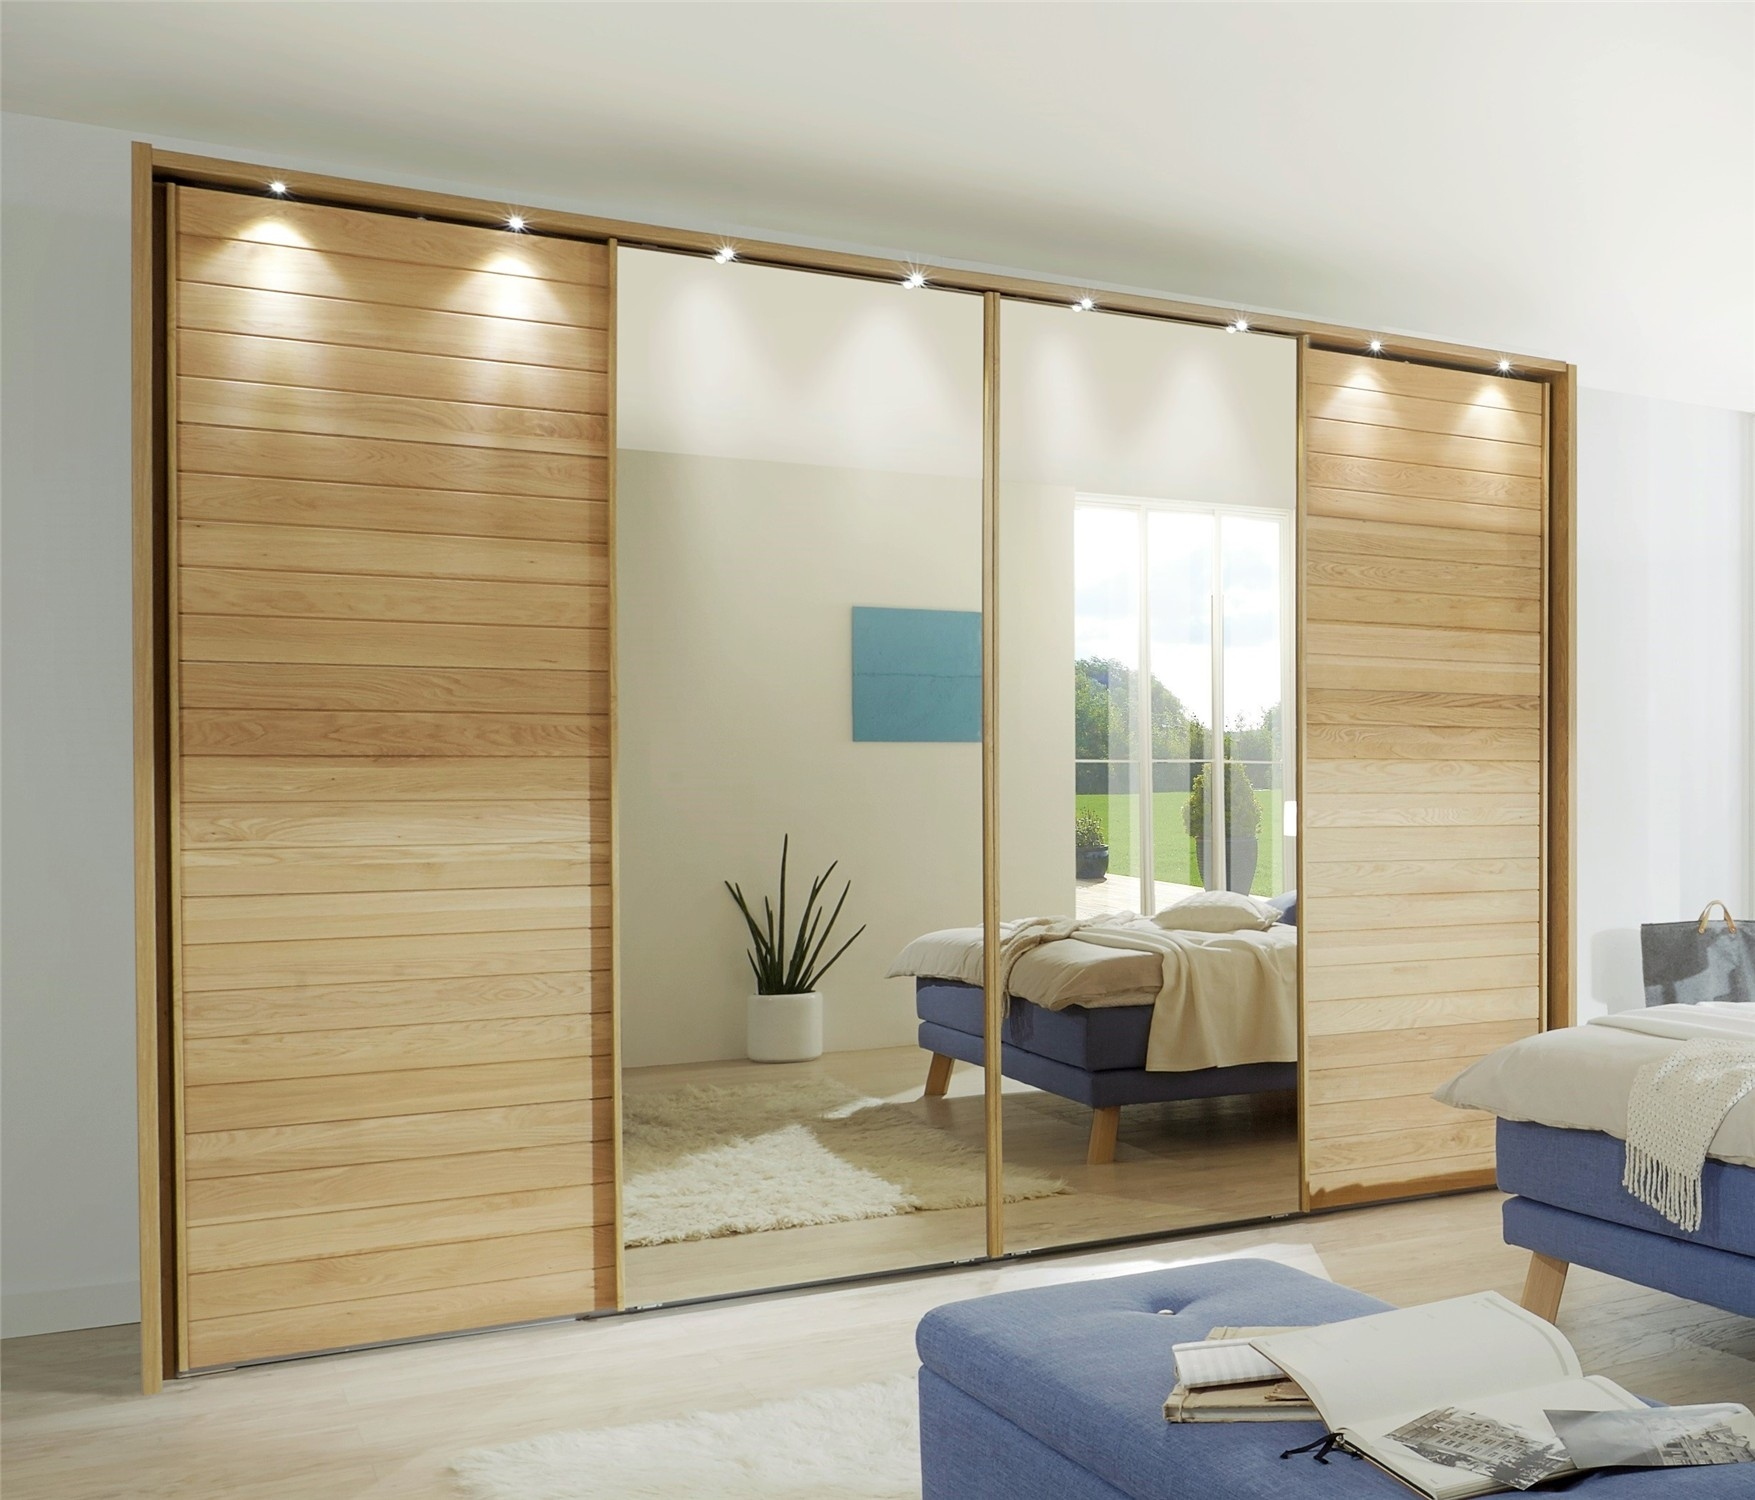 Sliding Wardrobe Doors Oak Mirror Sliding Doors